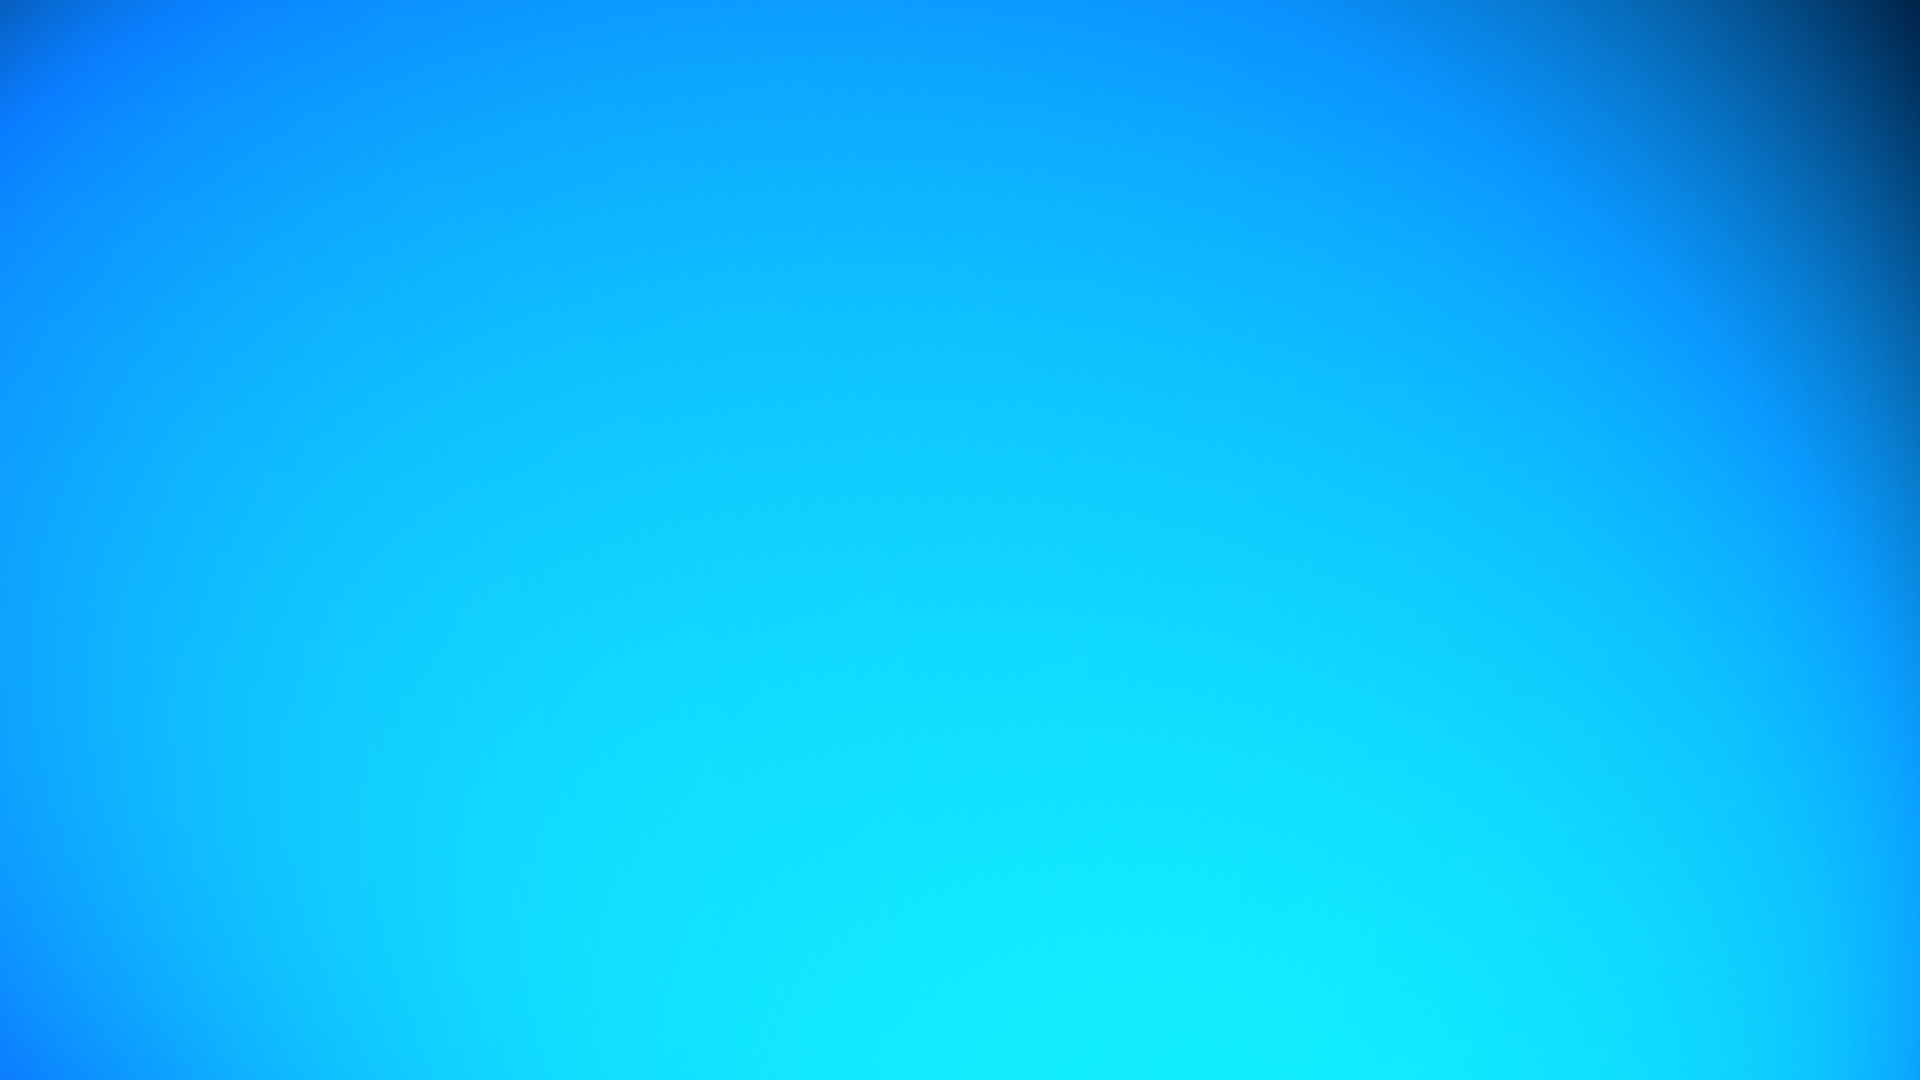 Blue Gradient · Image for Black Abstract Wallpaper …